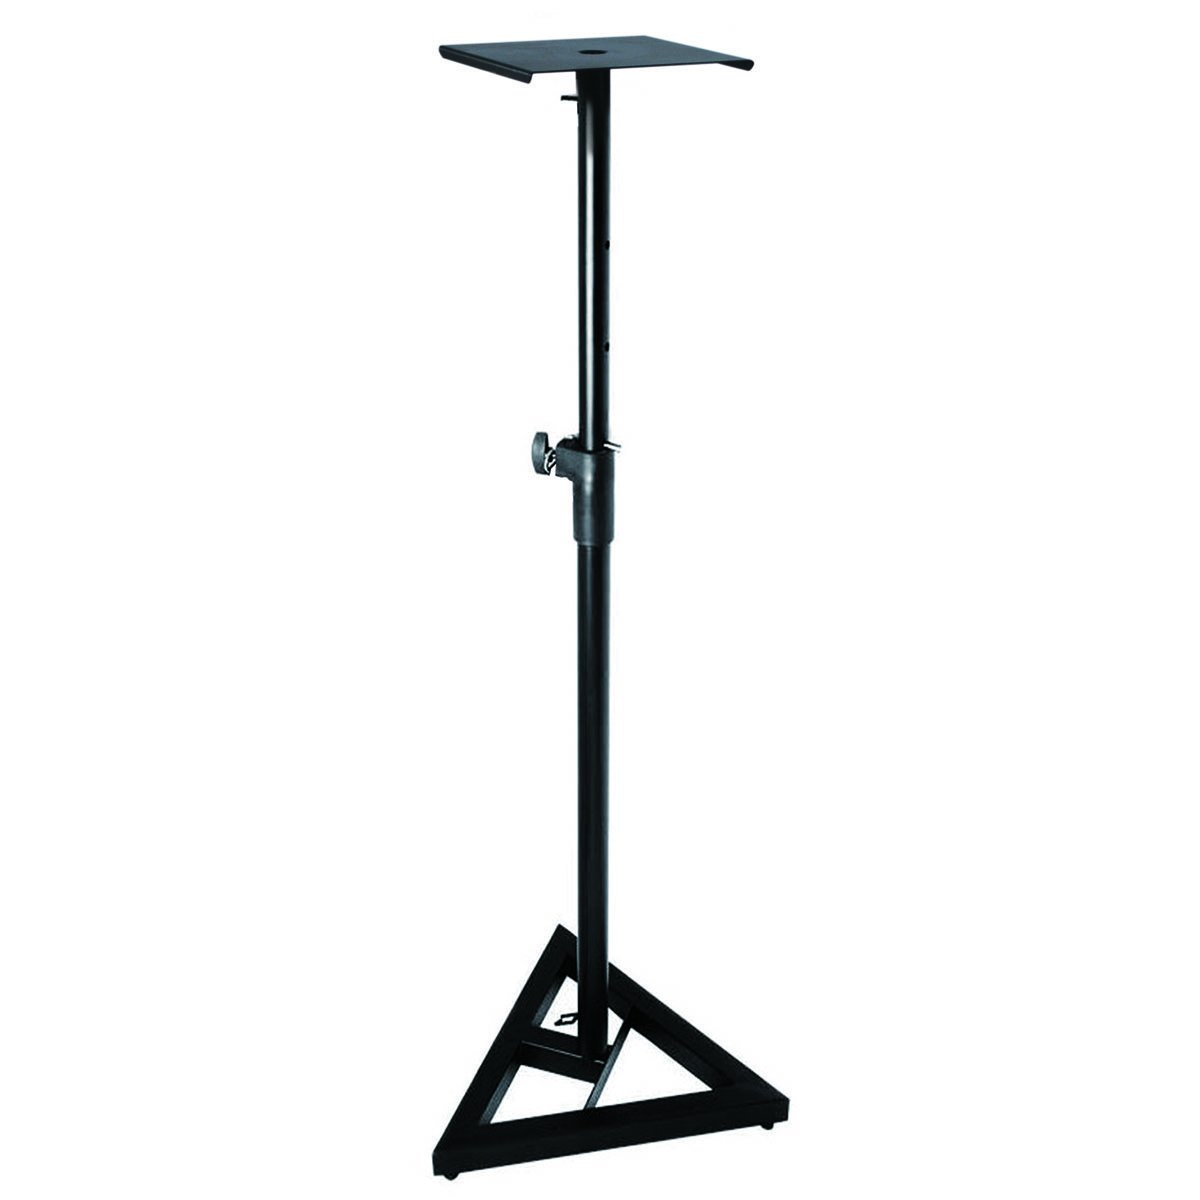 Accenta SST-5 Heavy-Duty Professional Speaker Monitor Stand by Accenta (Image #1)